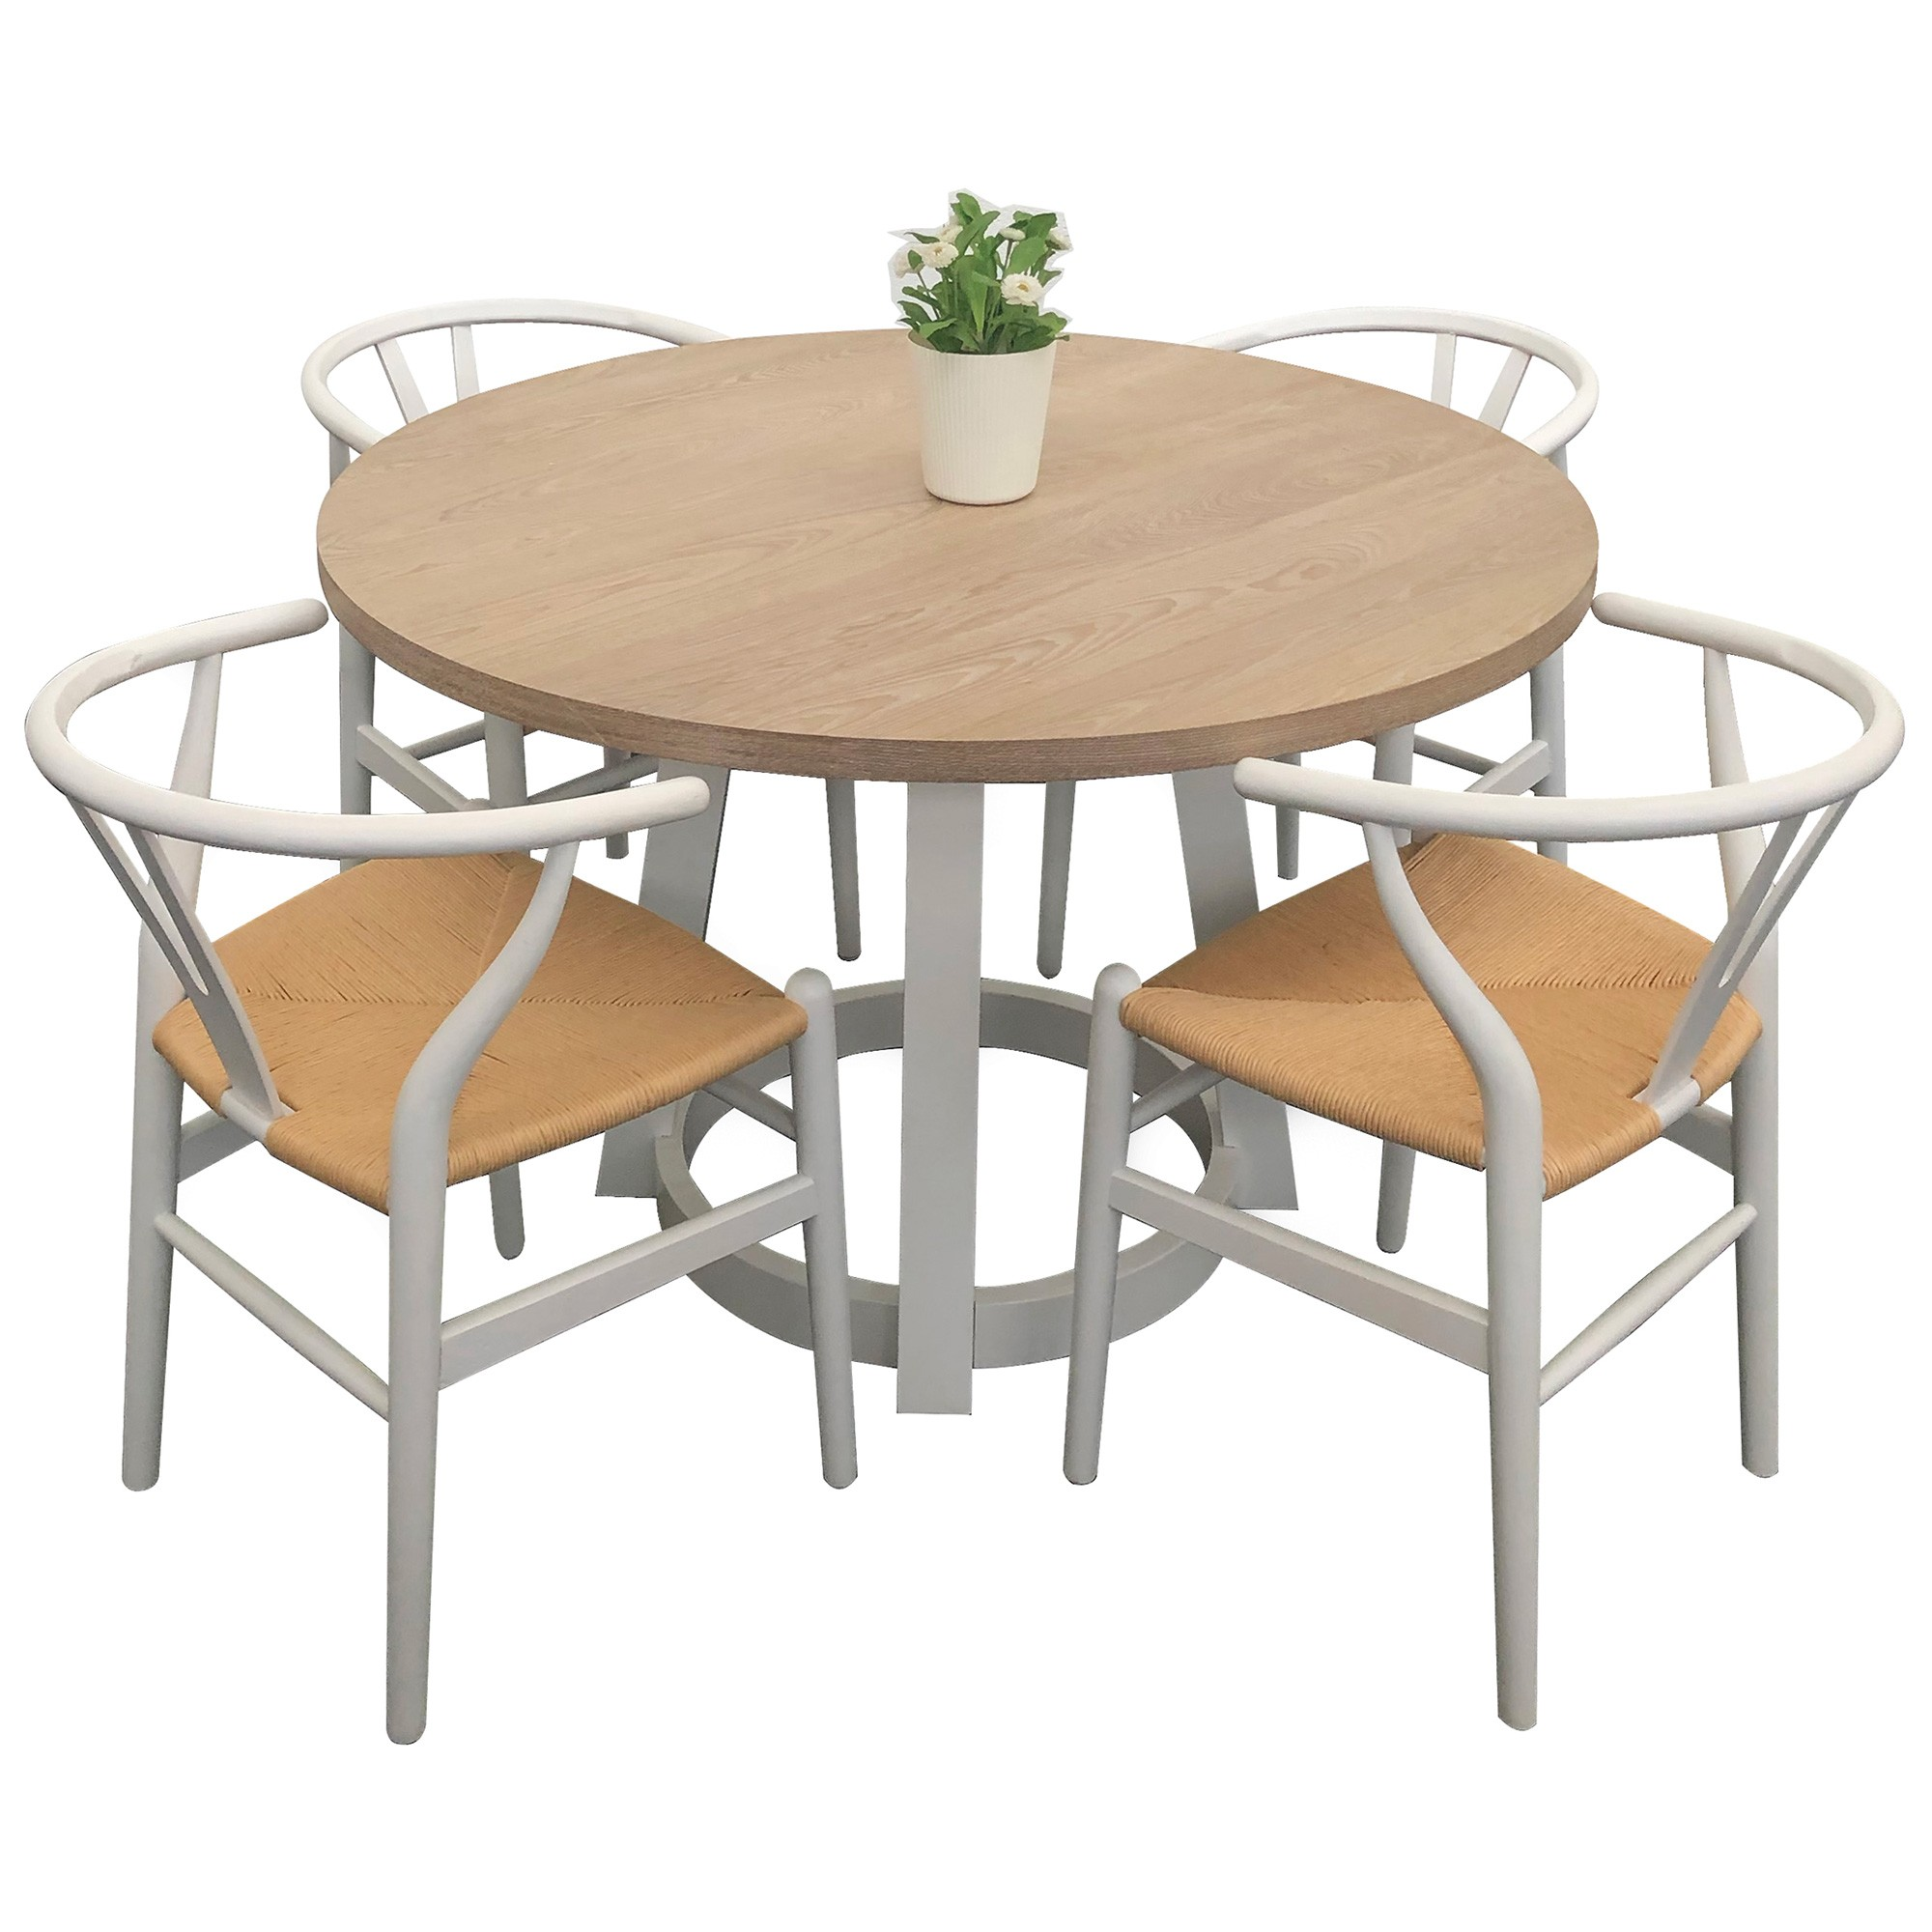 Havana 5 Piece Wooden Round Dining Table Set, 120cm